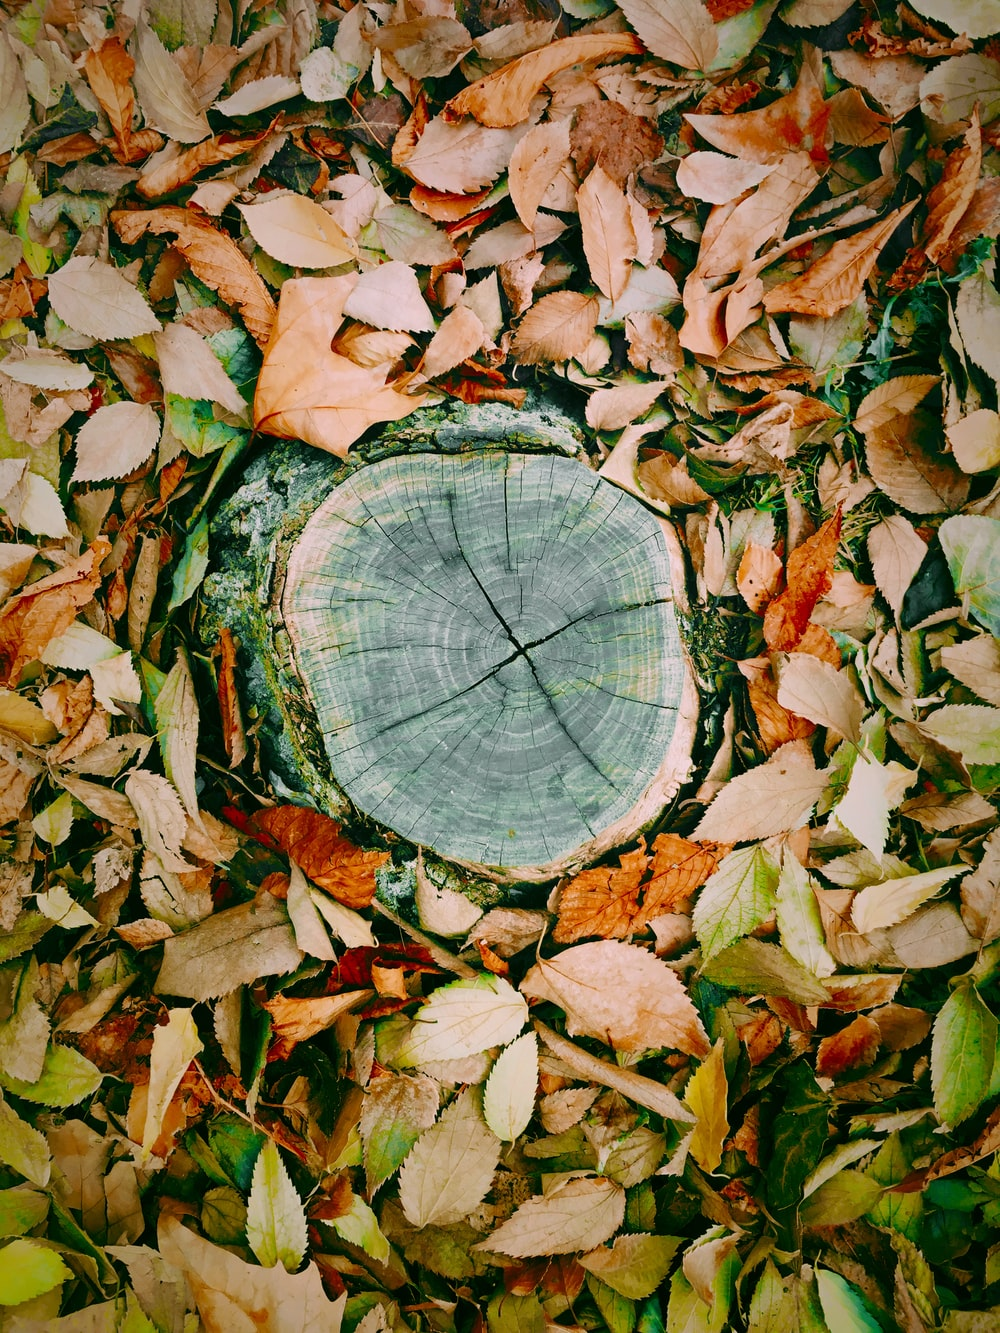 tree stump surrounded with leaves